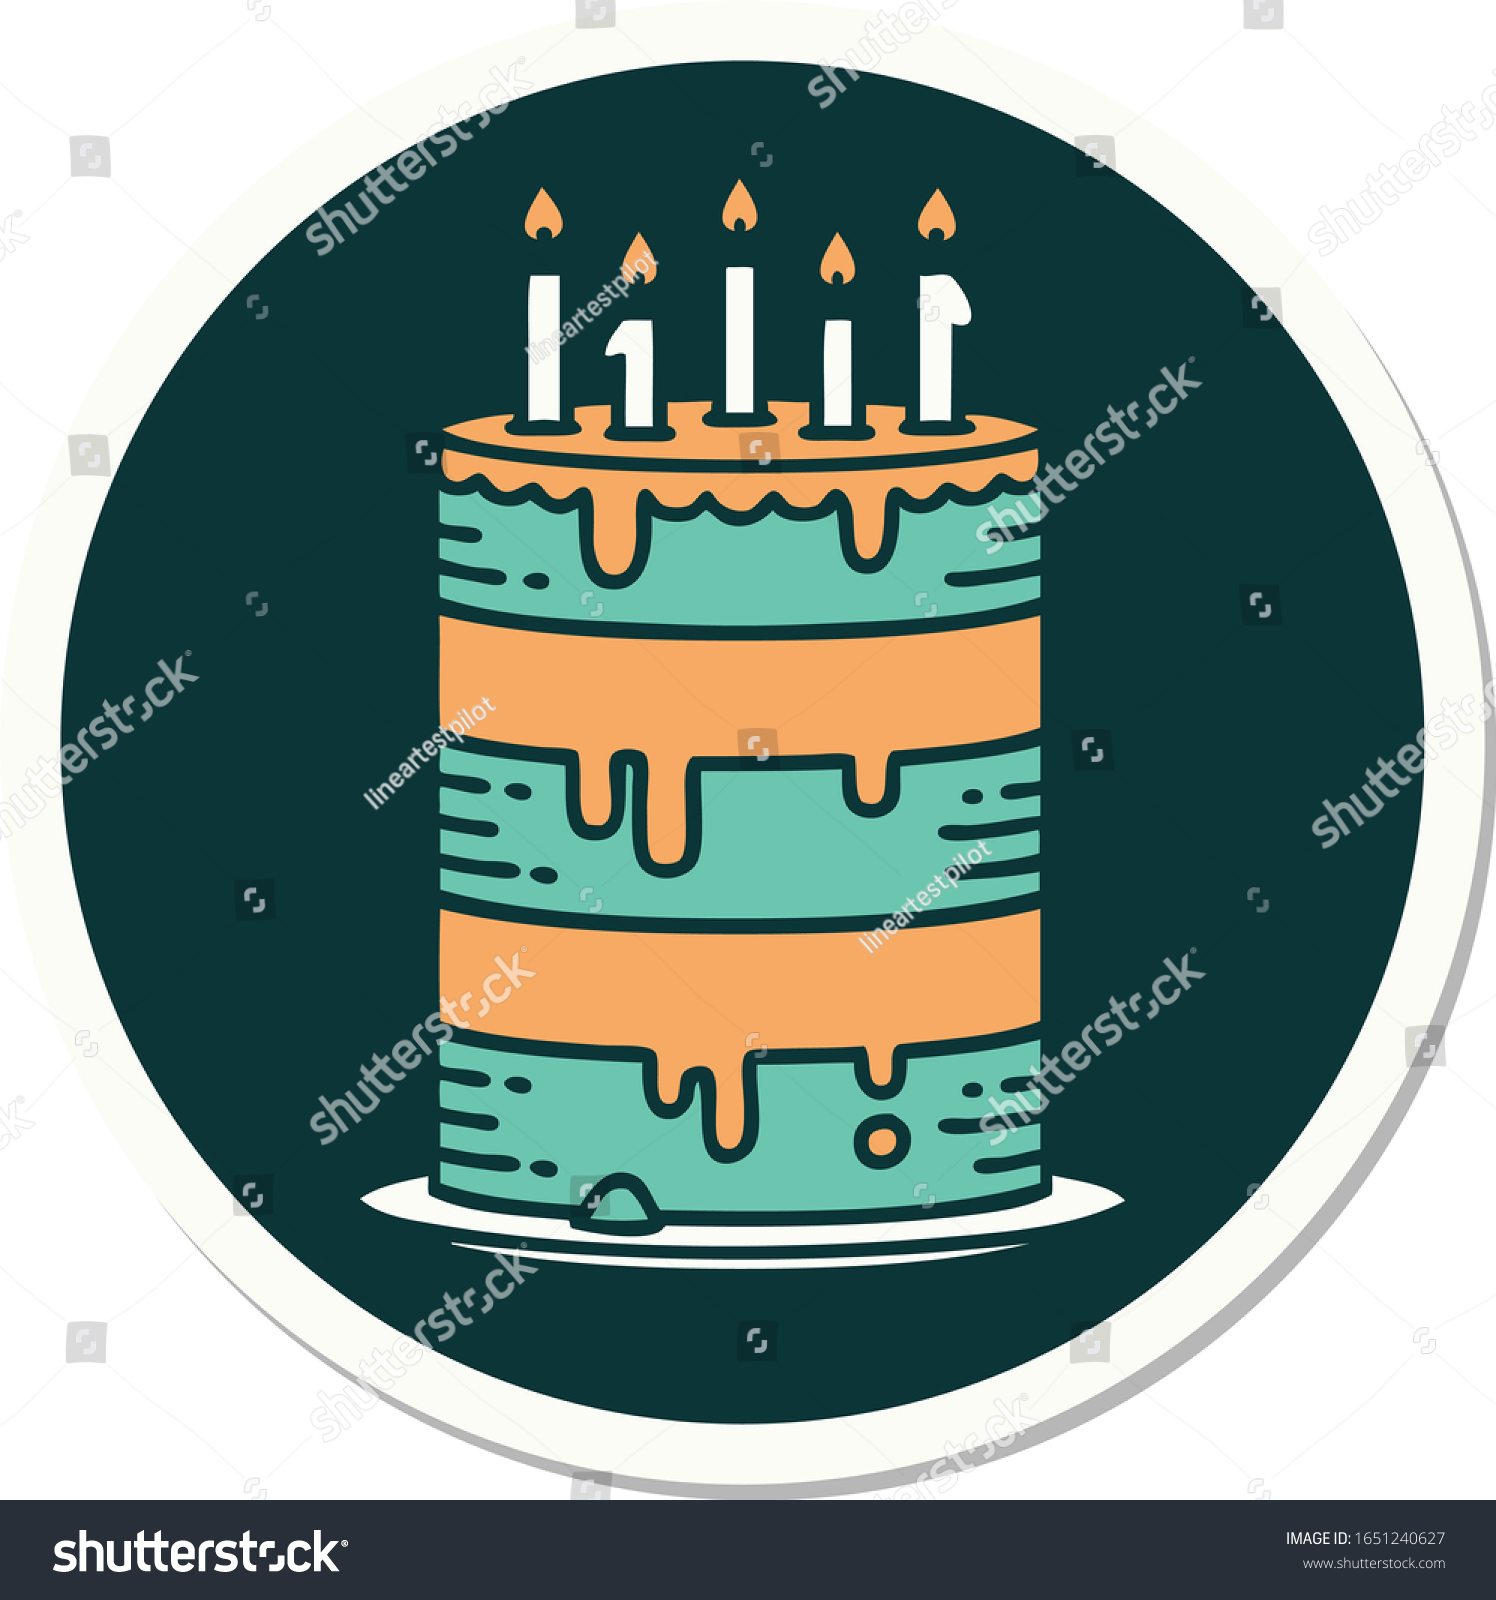 Magnificent Sticker Tattoo Traditional Style Birthday Cake Stock Vector Birthday Cards Printable Riciscafe Filternl